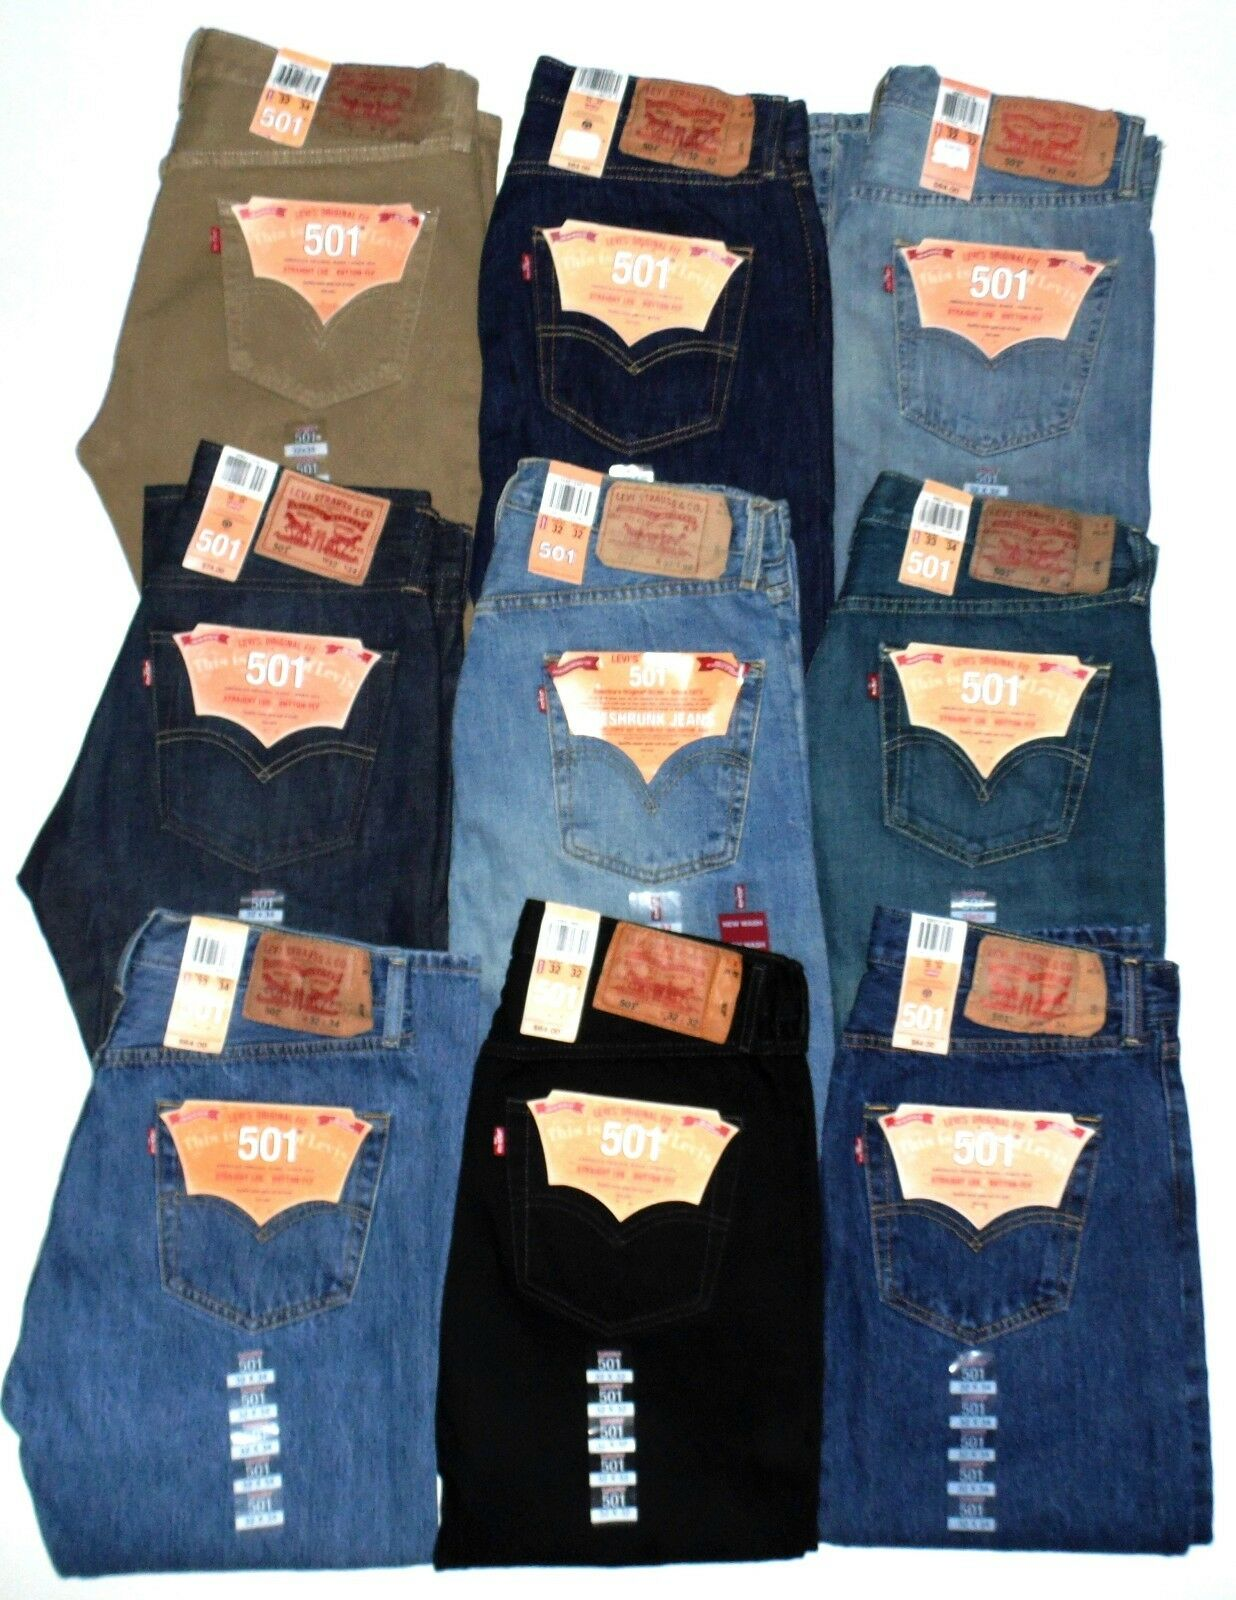 Levis 501 Mens Jeans Button Fly Authentic BIG & TALL Waist 46-60 New With Tags